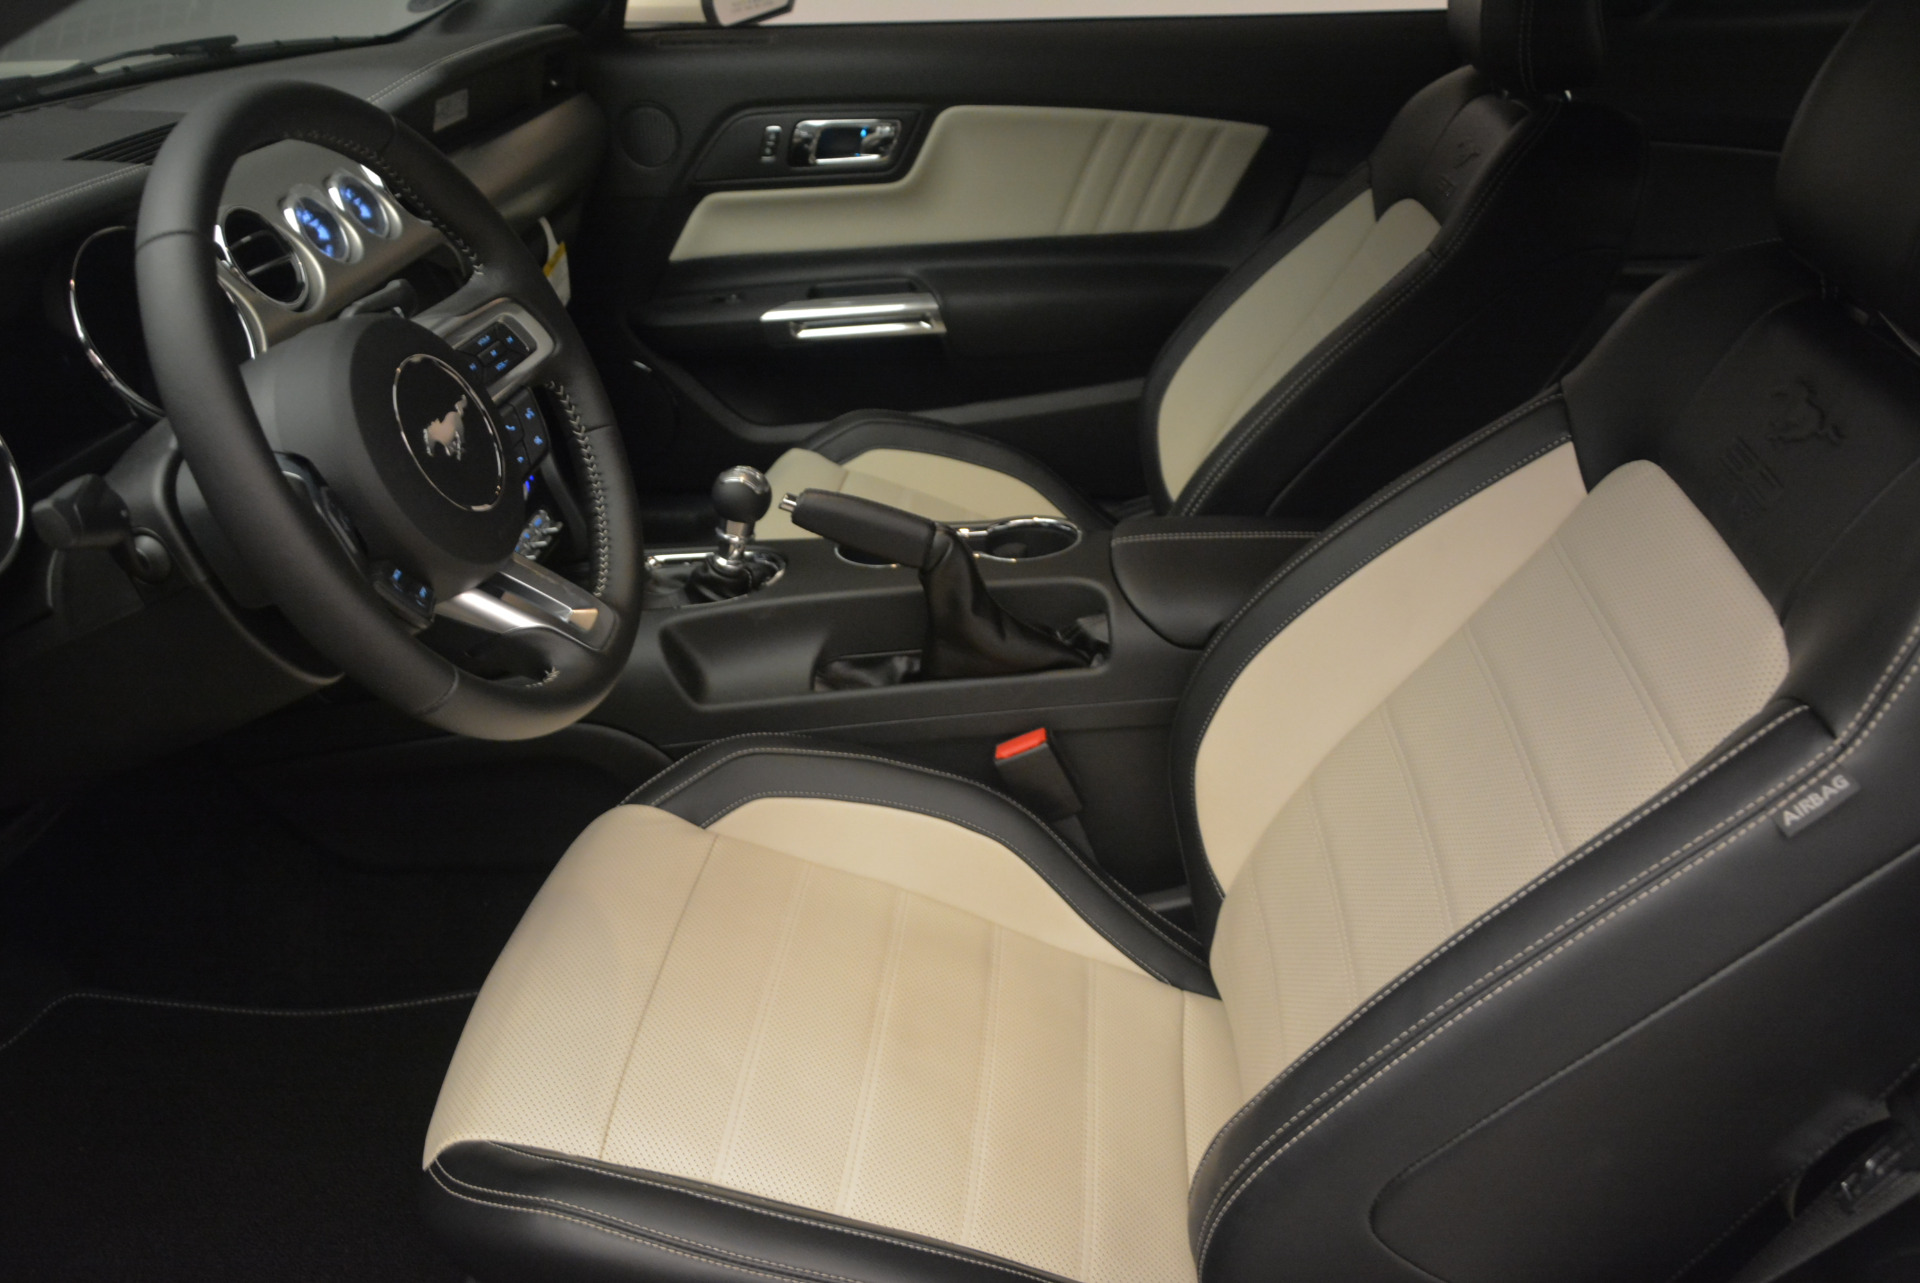 Used 2015 Ford Mustang GT 50 Years Limited Edition For Sale In Greenwich, CT 1793_p14